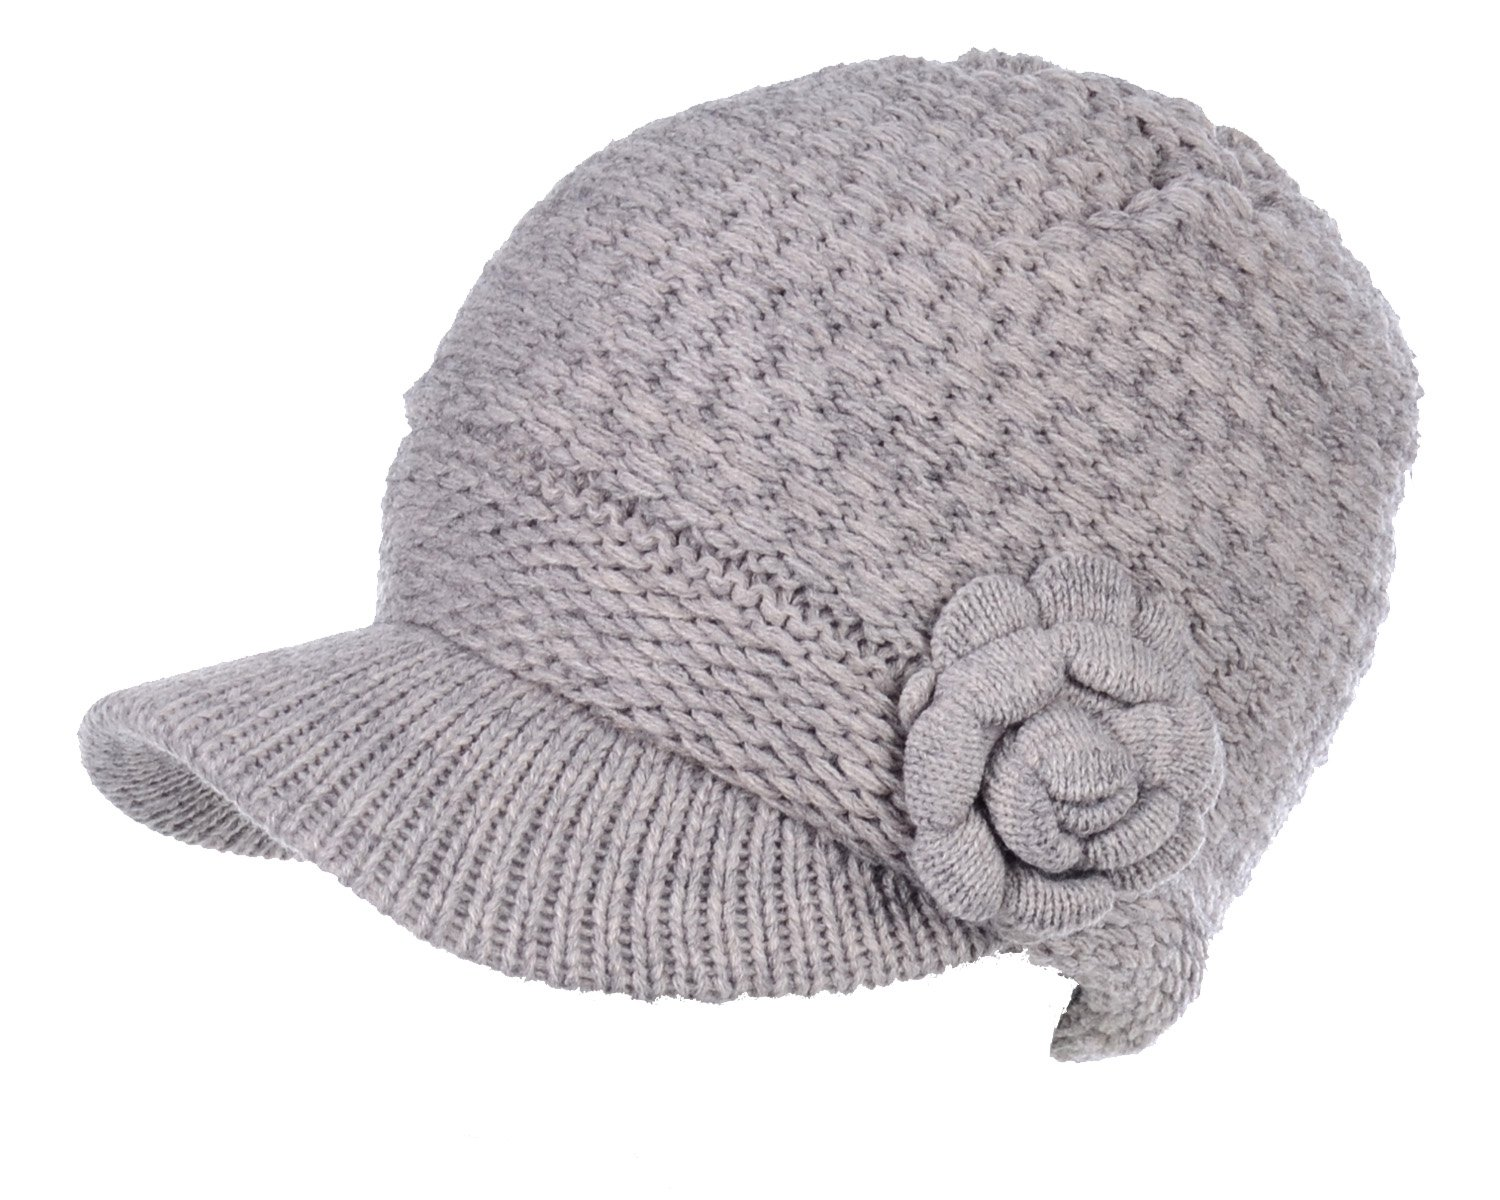 BYOS Womens Winter Chic Cable Knitted Newsboy Cabbie Cap Beret Beanie Hat with Visor, Warm Plush Fleece Lined, Many Styles (Waffle Knit W/Flower - Beige)